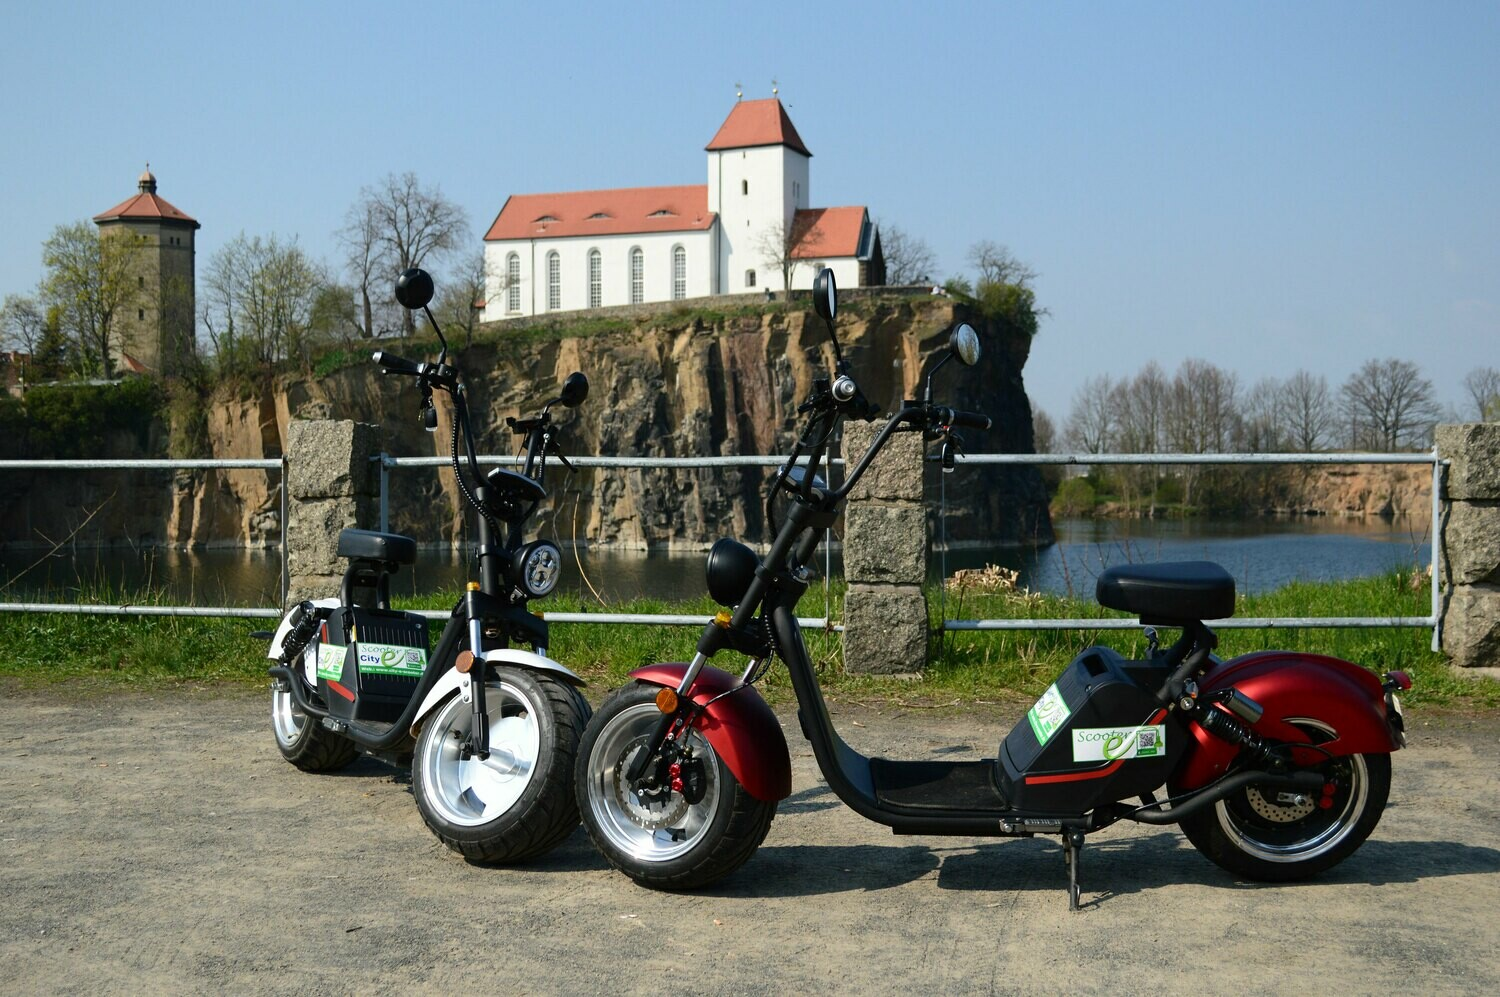 City-e-Scooter 2018 Modell HL 3.0 in 1500 W und  3000 W und  COC